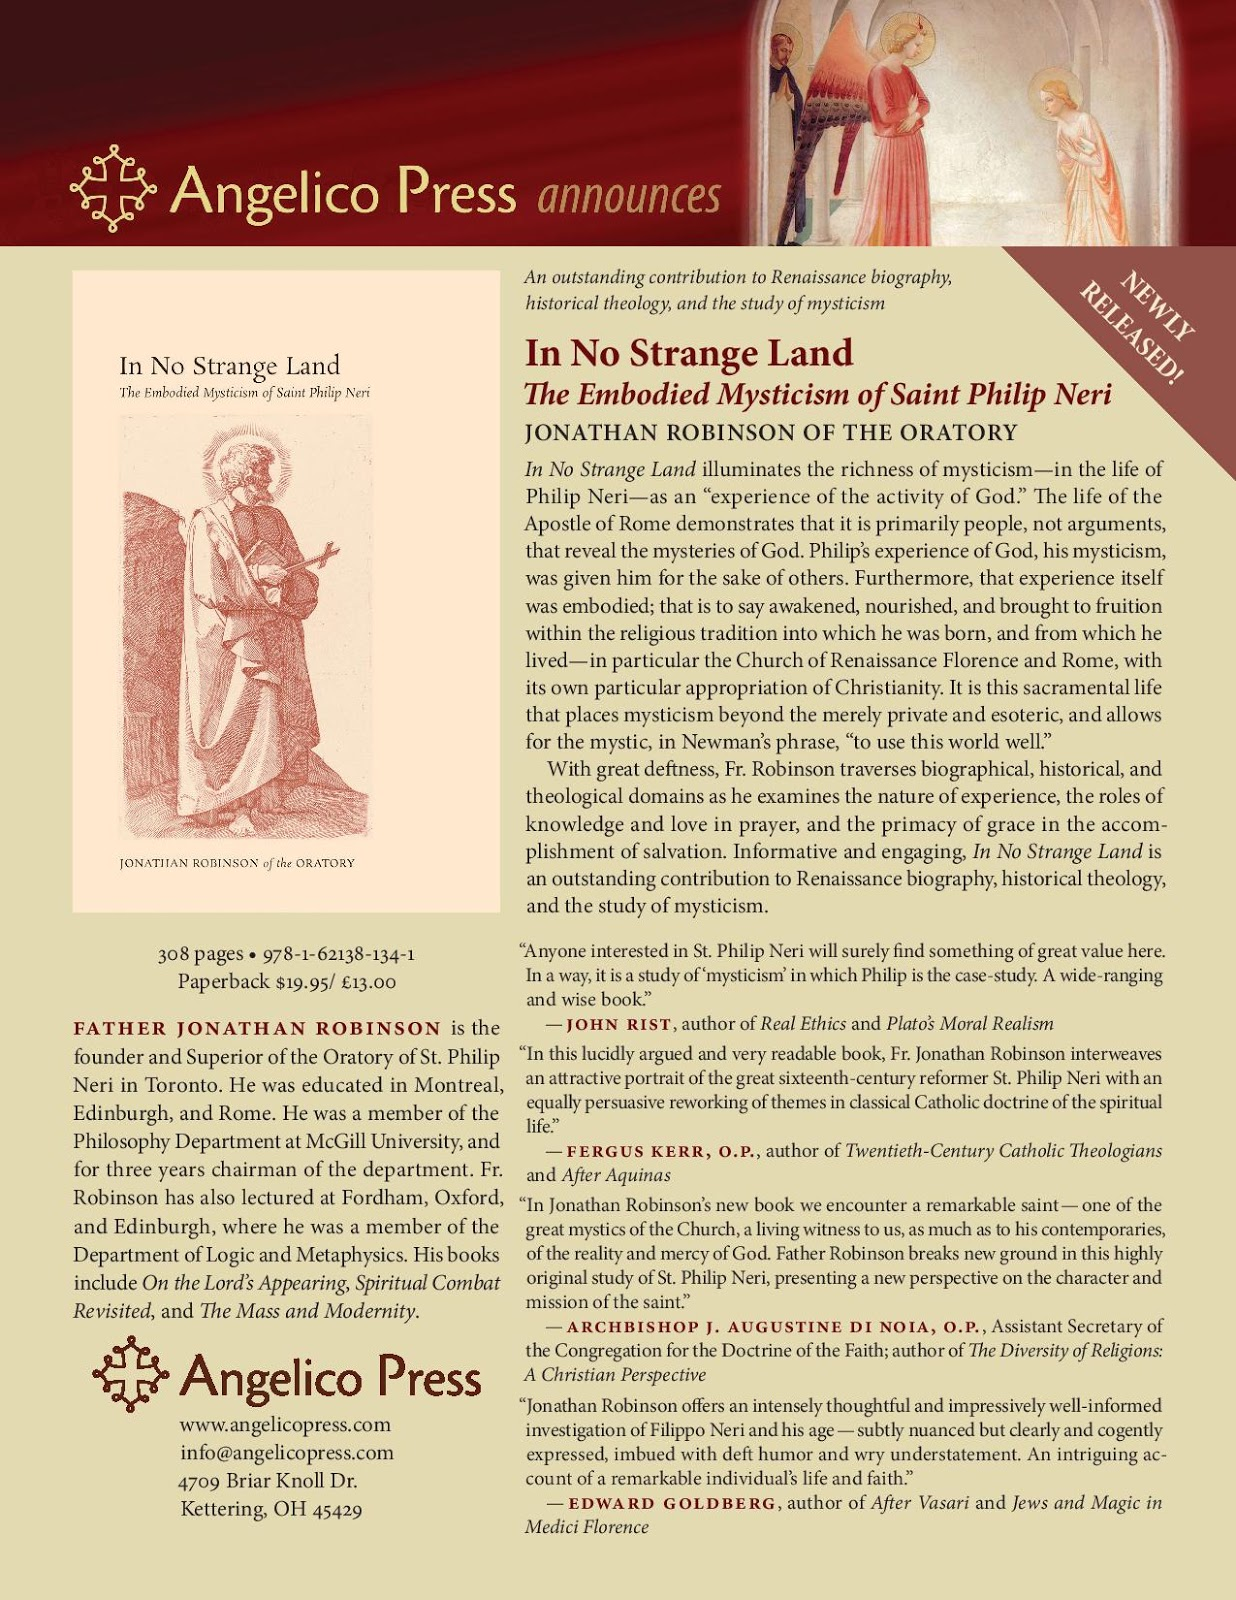 new liturgical movement a new book about st philip neri reviewed jonathan robinson founder of the toronto oratory has written a remarkable book on the founder of the oratorians it is not a biography or hagiography